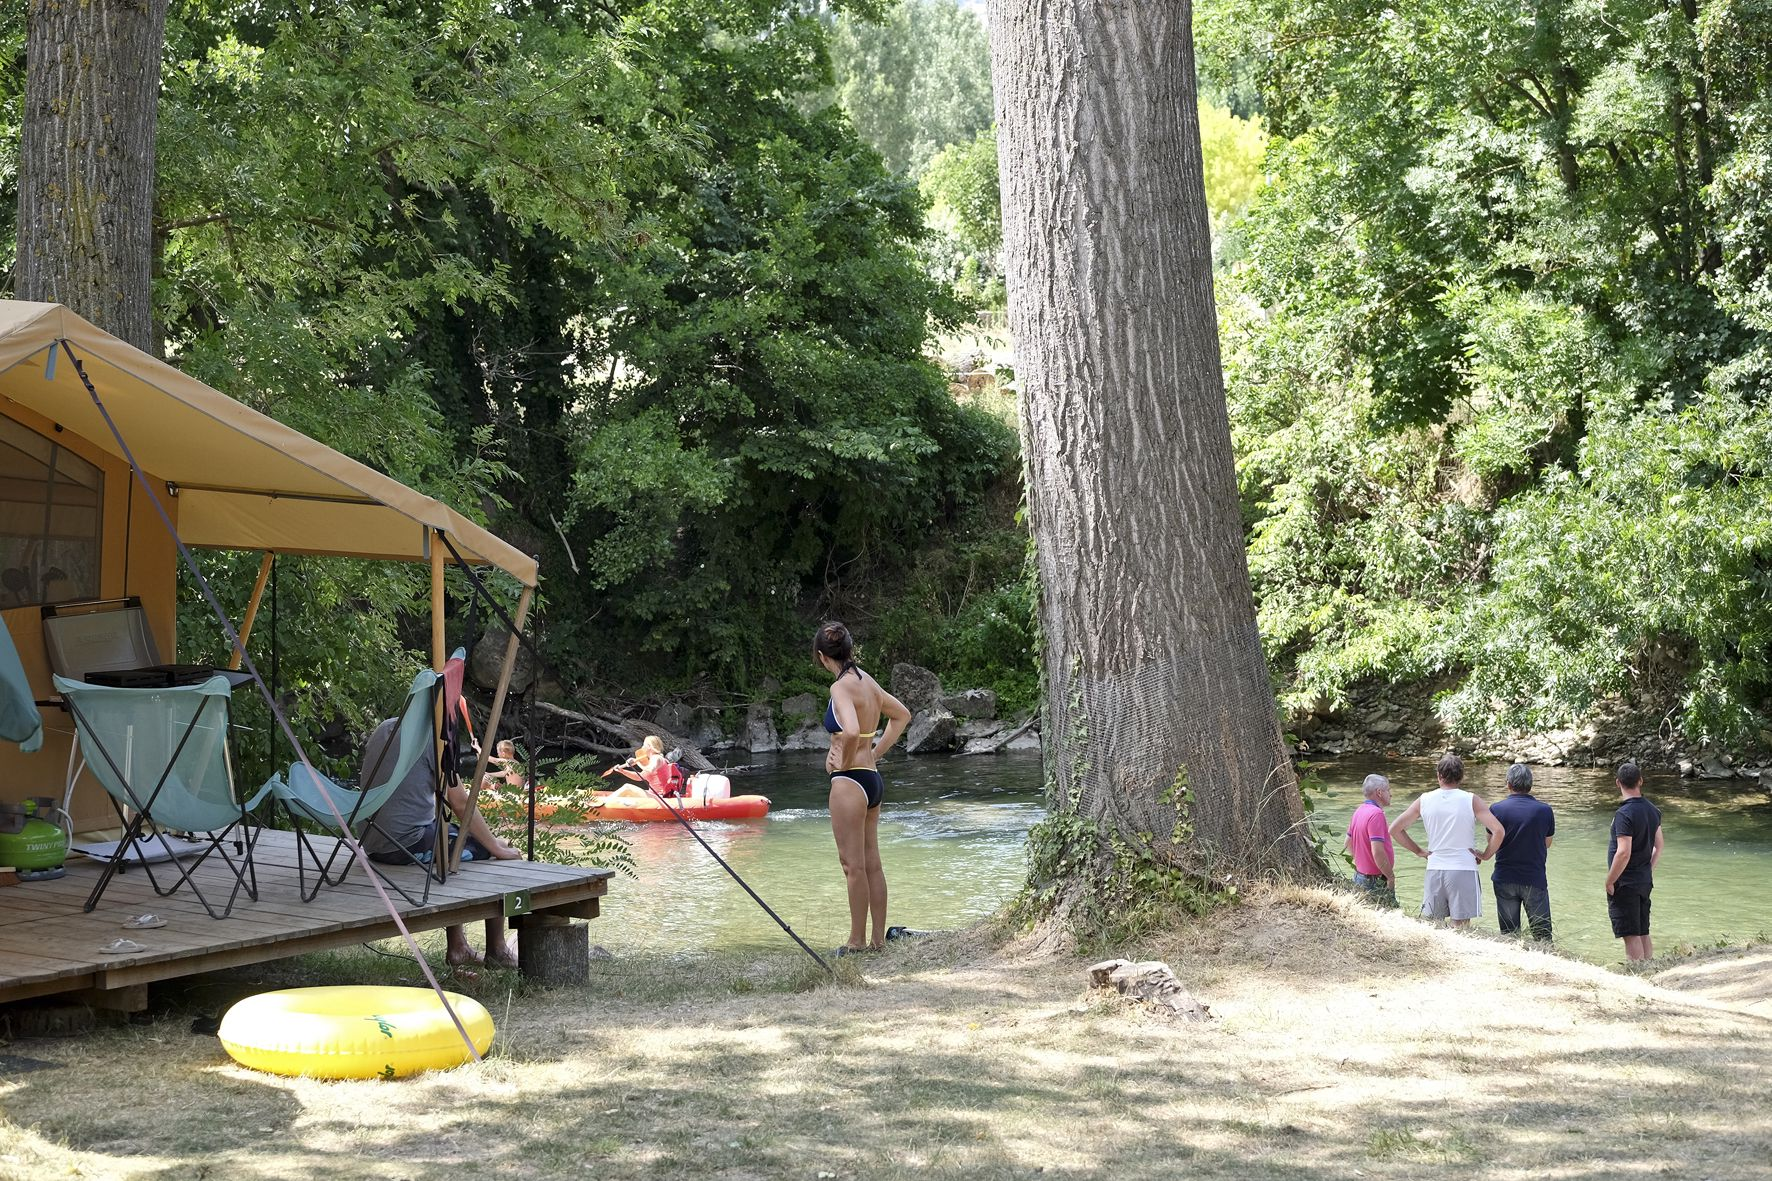 Family friendly camping in Aveyron on the banks of two rivers – the Tarn and the Dourbie.